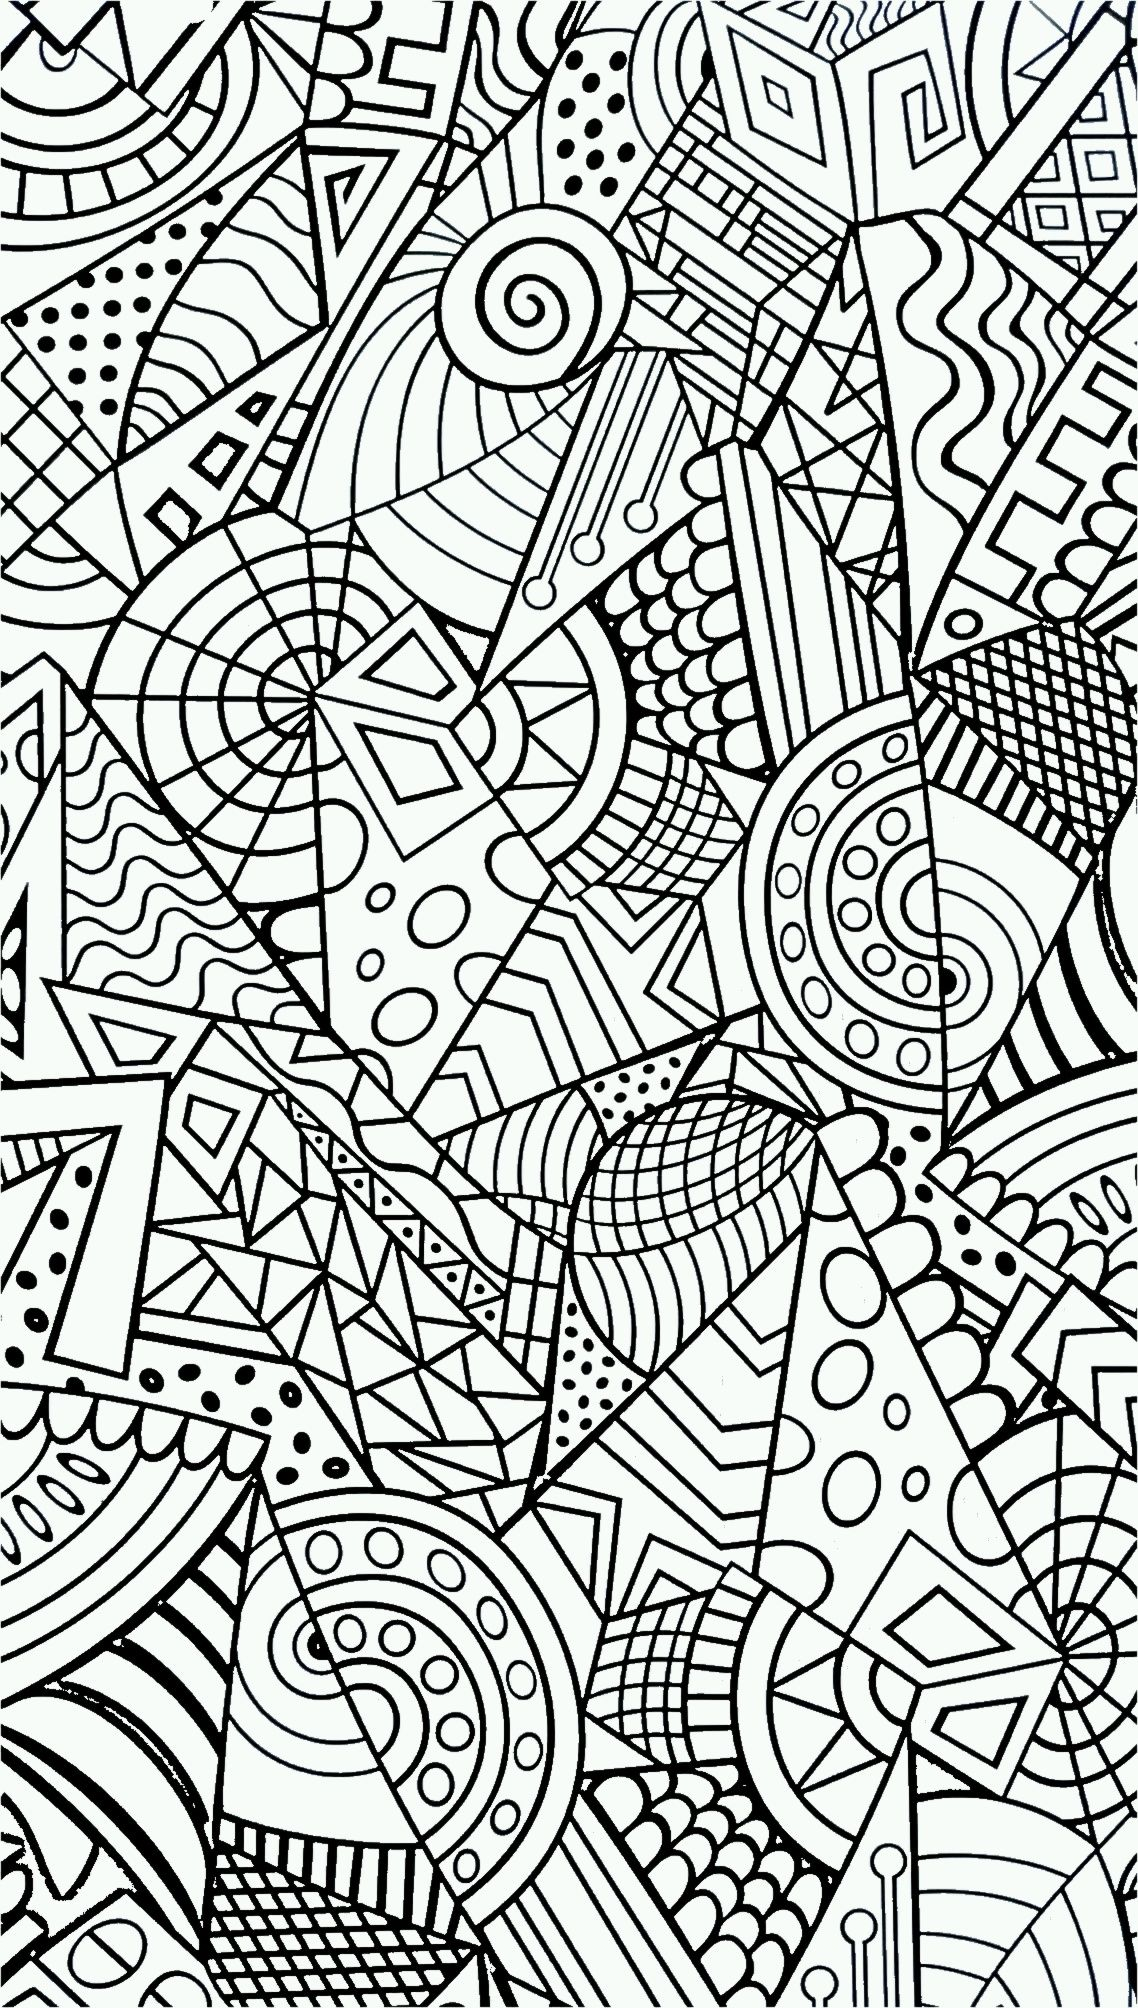 Colouring pages geometric patterns - Abstract Colouring Book Geometric Design Coloring Page